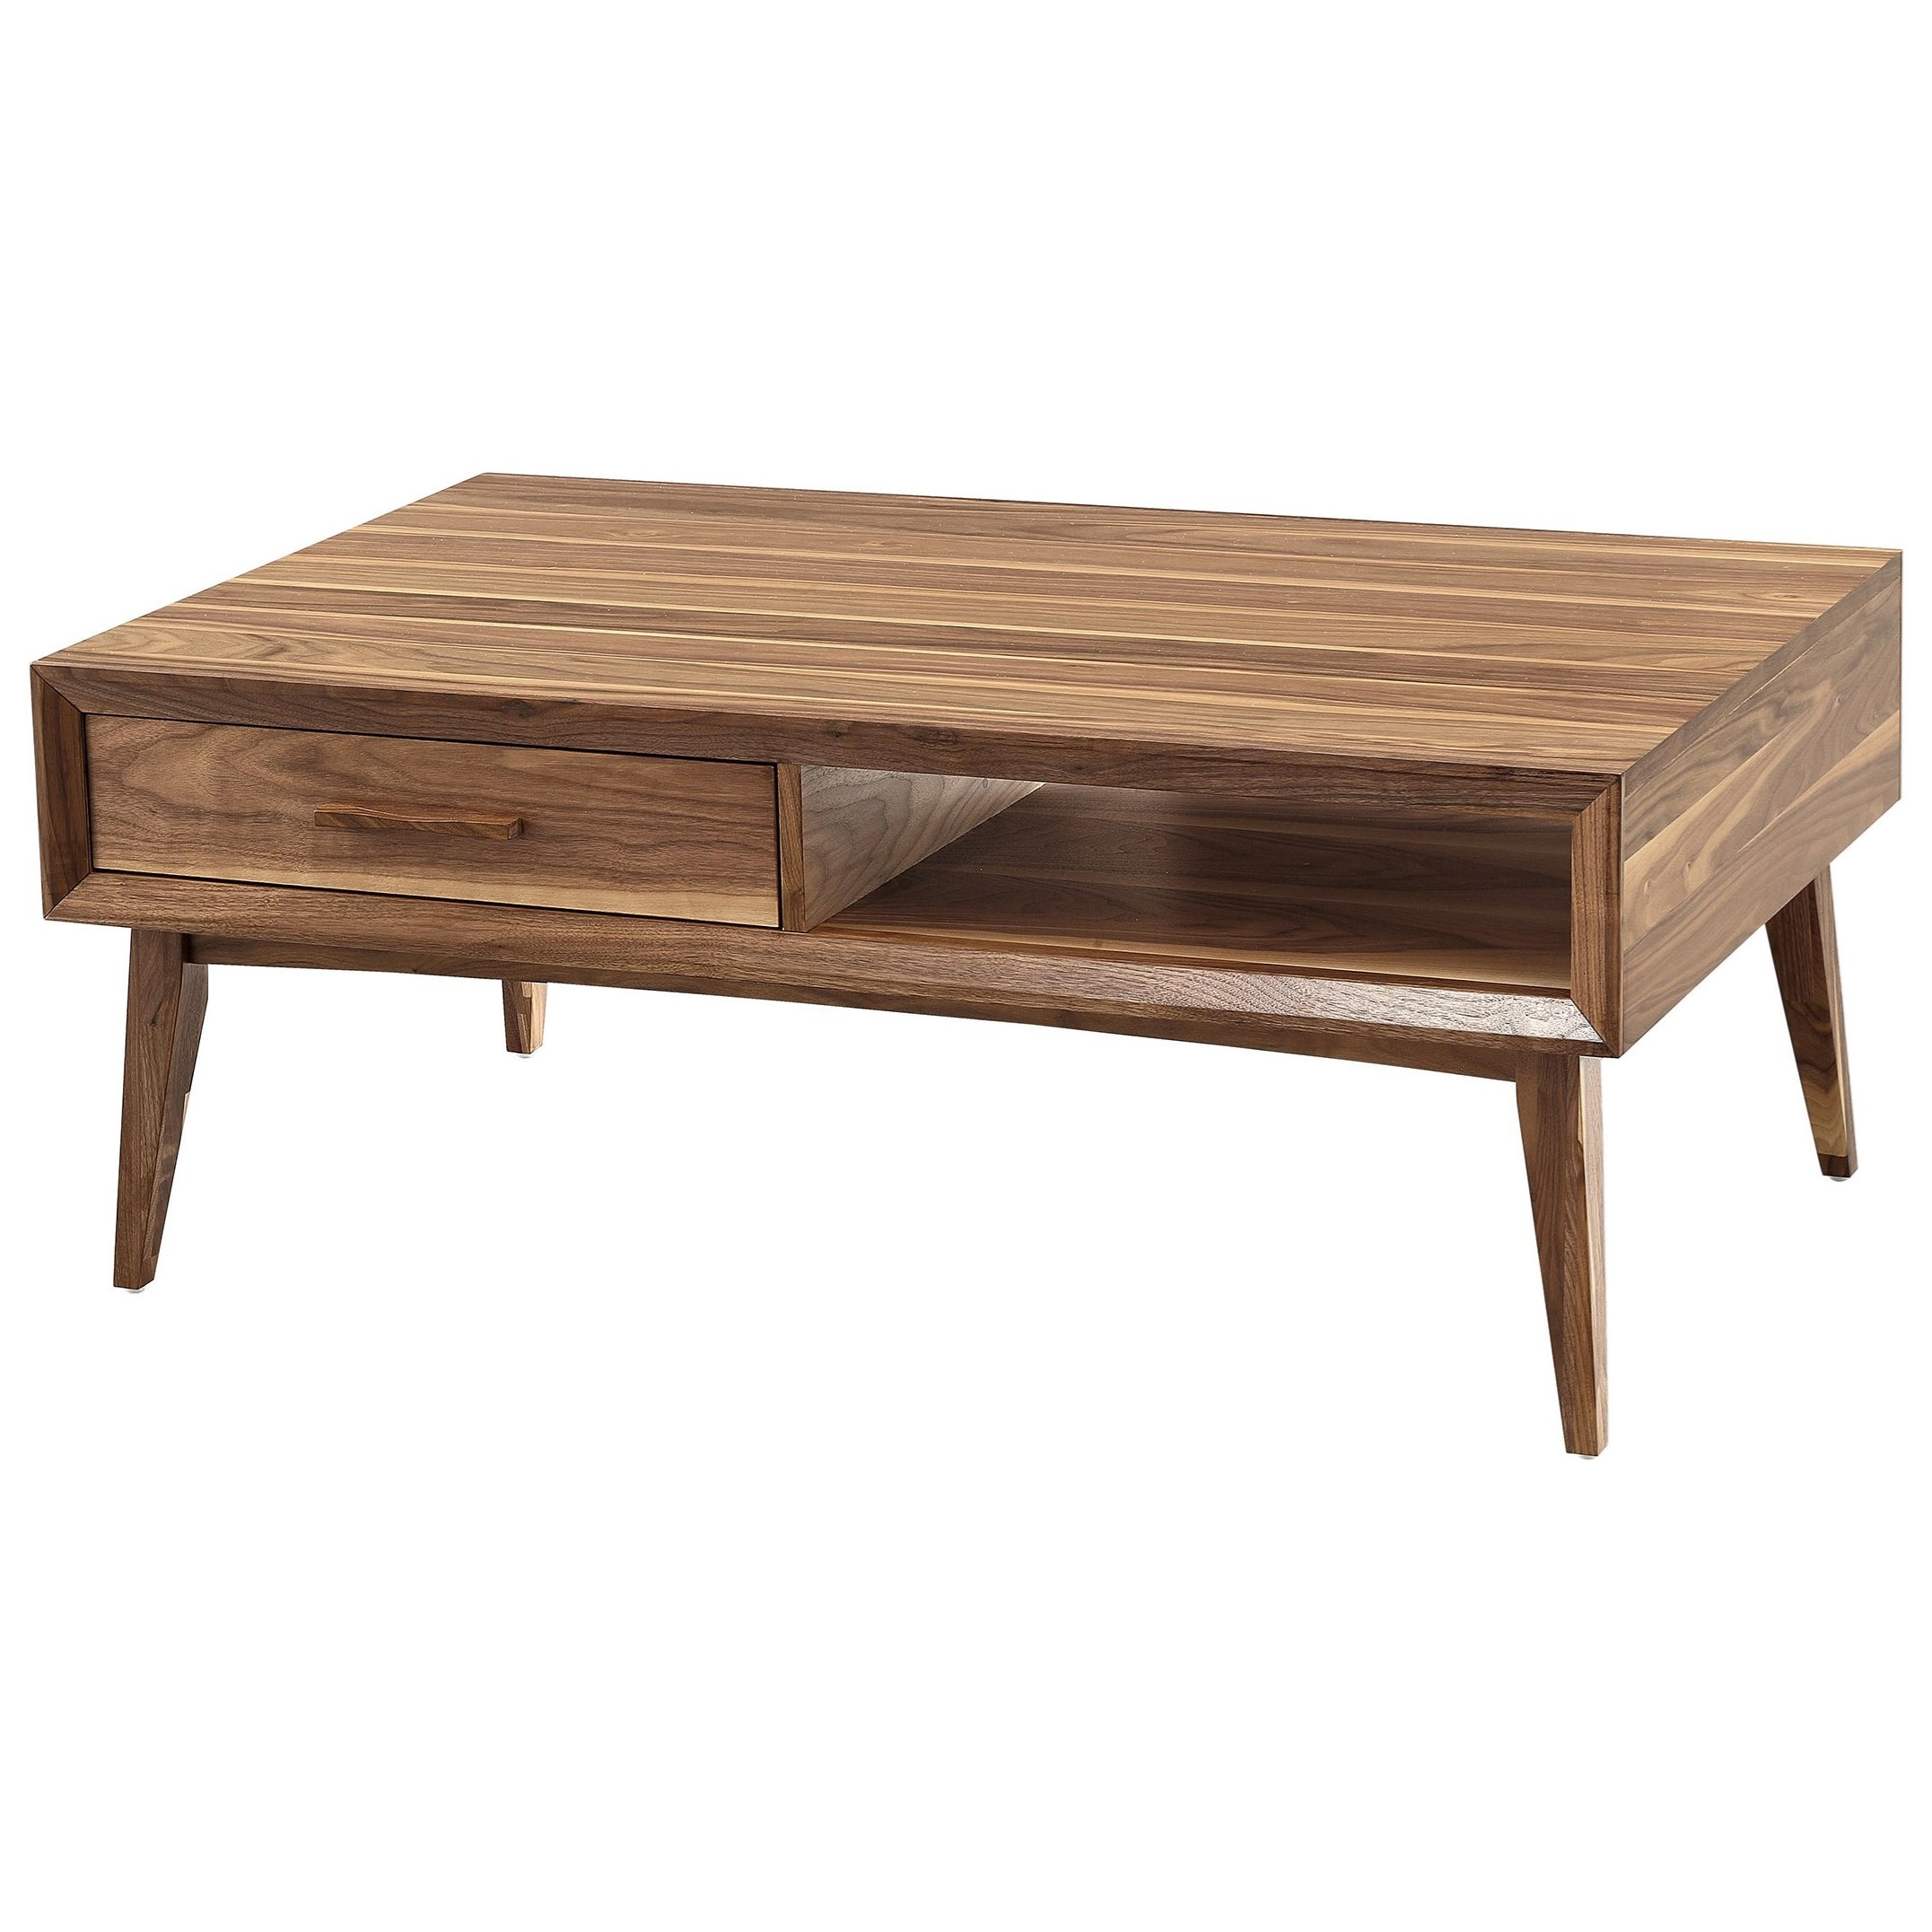 Winners Only Venice 1326156 Contemporary Coffee Table With Splayed Legs And Full Extension Drawer Dunk Bright Furniture Cocktail Coffee Tables